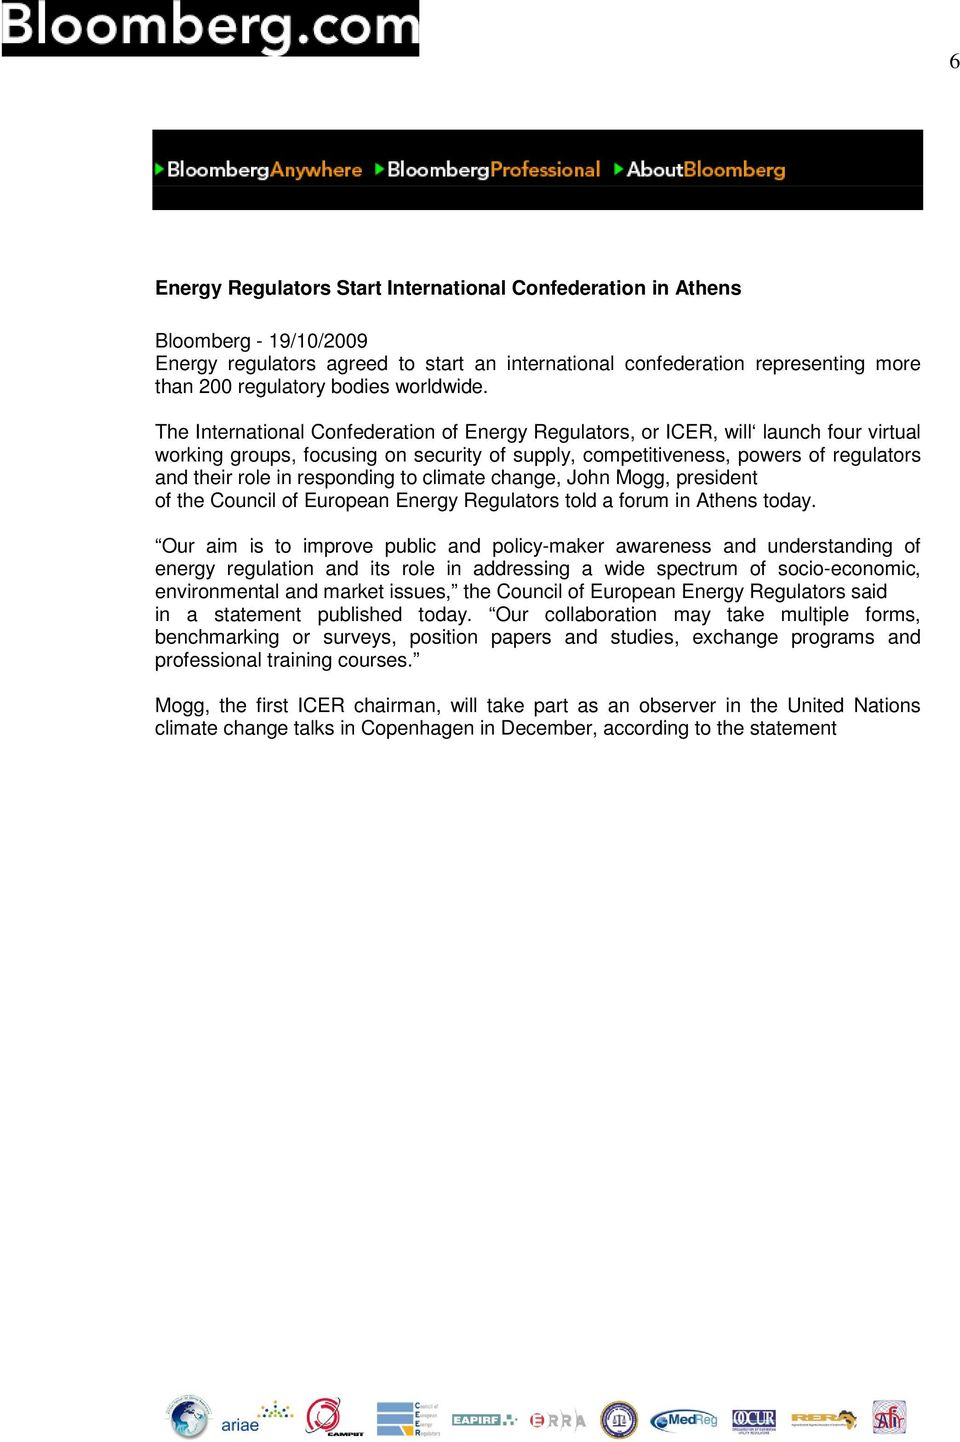 The International Confederation of Energy Regulators, or ICER, will launch four virtual working groups, focusing on security of supply, competitiveness, powers of regulators and their role in